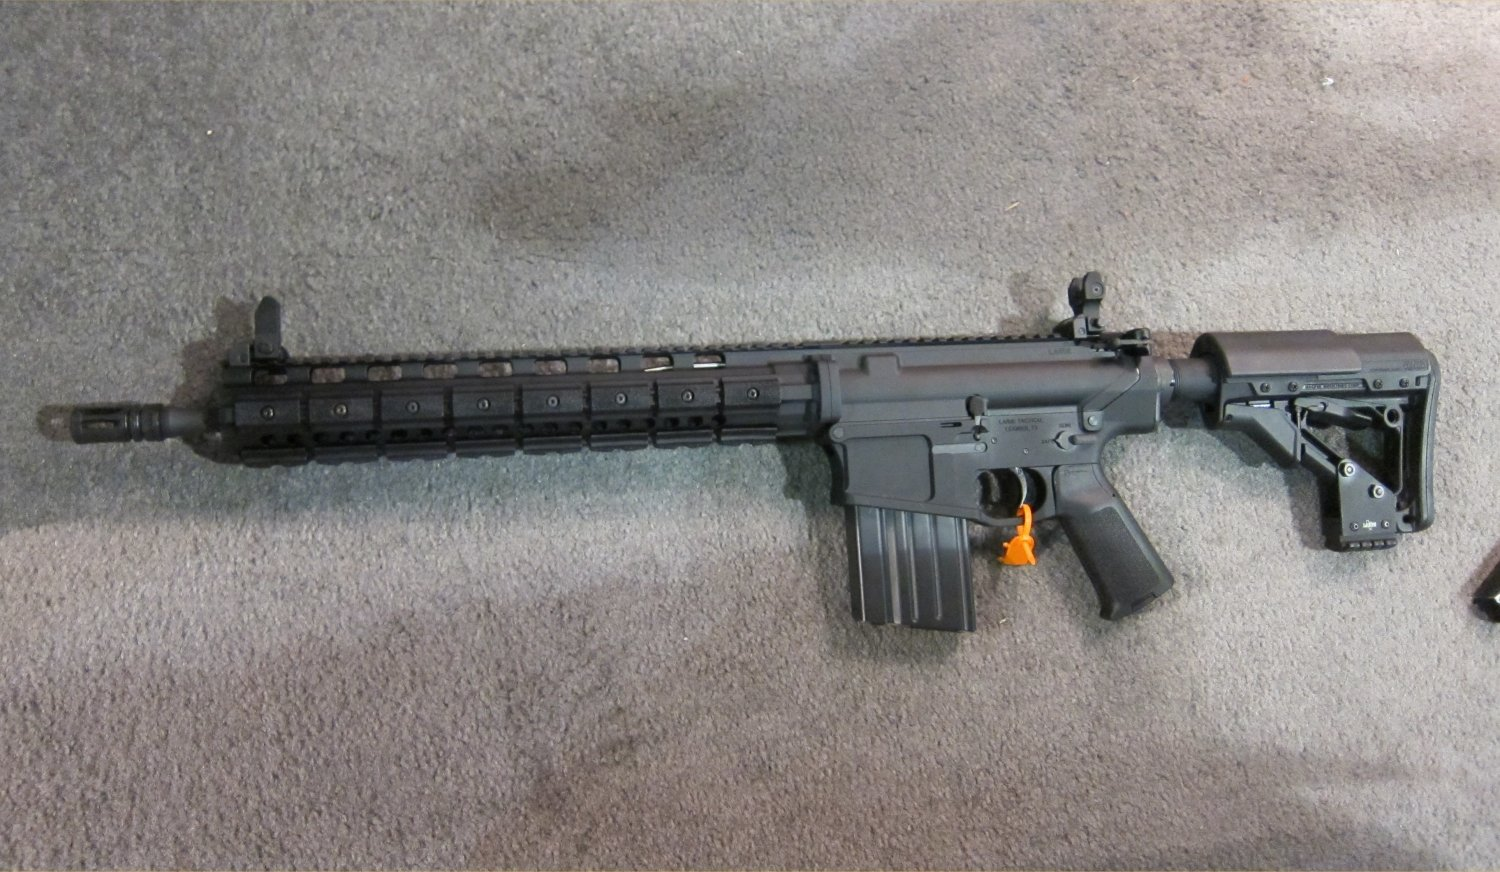 LaRue Tactical OBR 7.62 PREDATAR Series Tactical AR Carbine at SHOT Show 2011 3 <!  :en  >LaRue Tactical PredatAR Series Lightweight OBR 5.56 and OBR 7.62 Tactical AR Carbines Debut at SHOT Show 2011 (Video!)<!  :  >